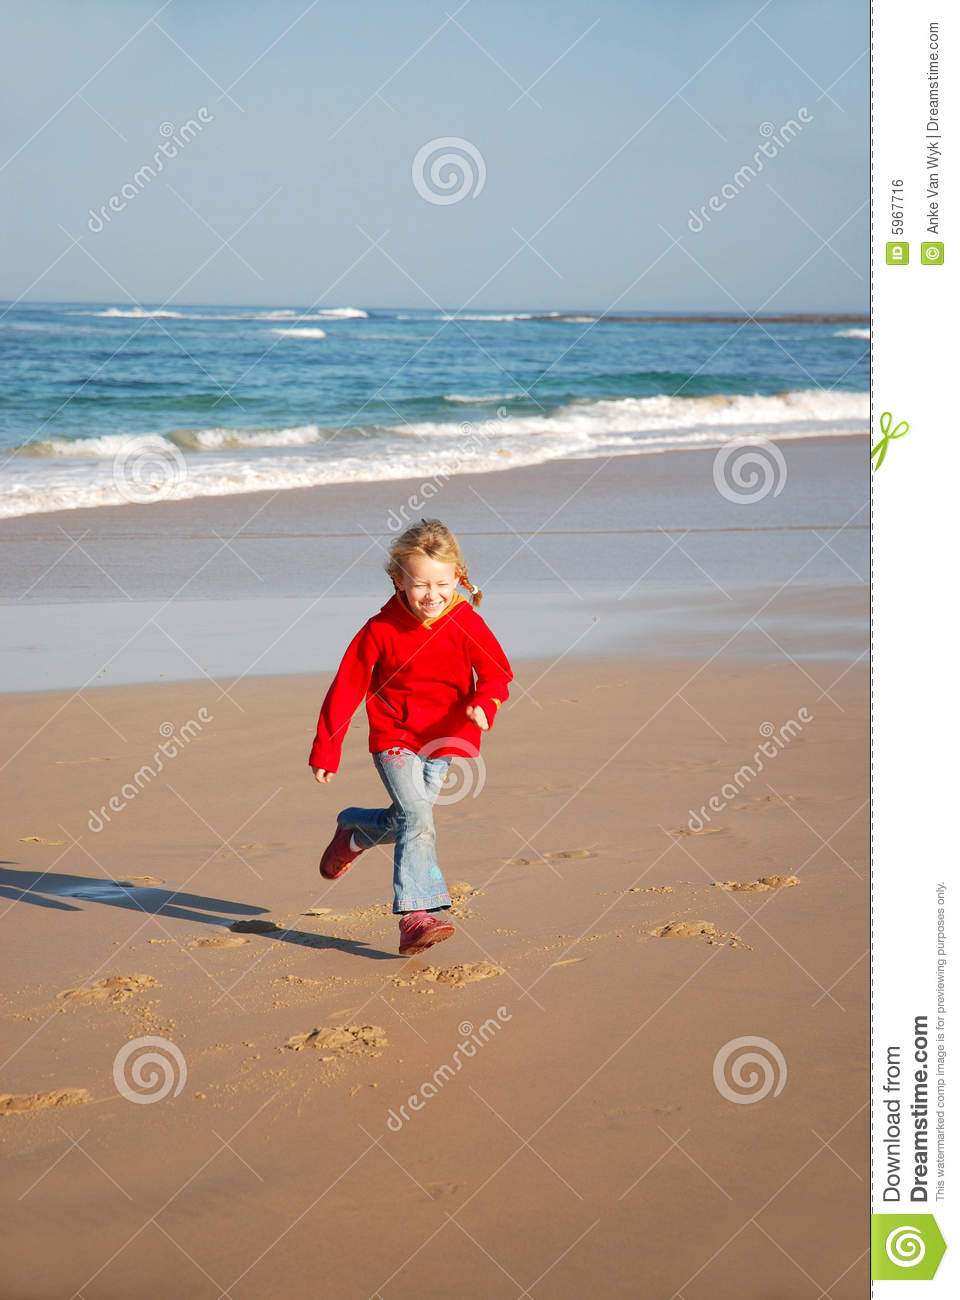 Young Girl Running On Beach Stock Photo - Image: 5967716 Girl Running On Beach